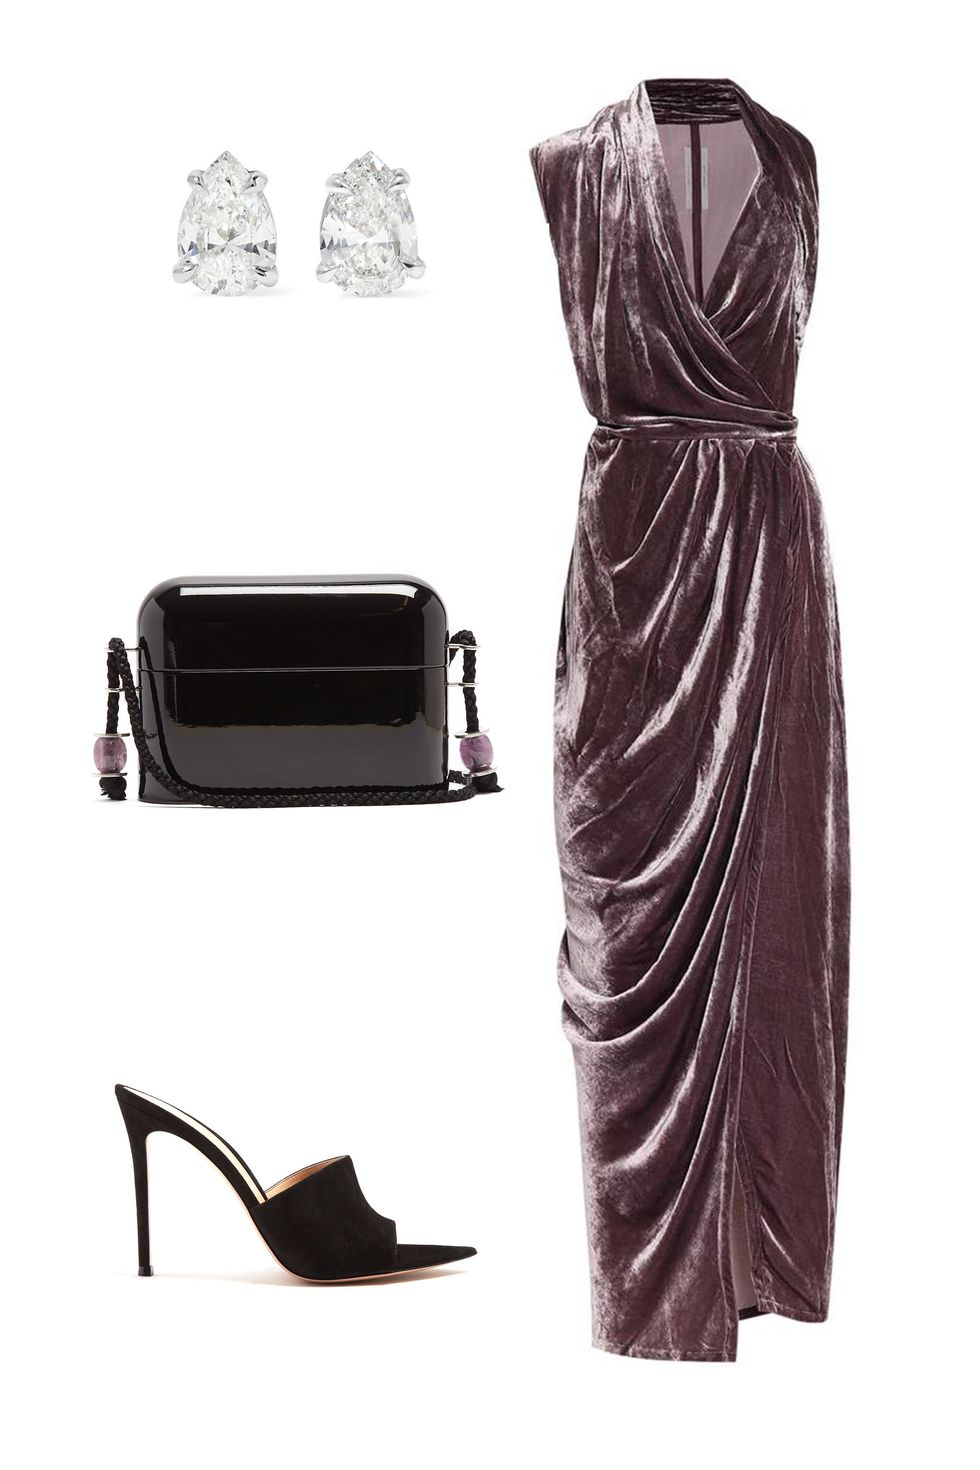 what-to-wear-for-a-fall-wedding-guest-outfit-autumn-velvet-grayd-dress-maxi-wrap-black-bag-black-shoe-sandalh-studs-dinner.jpg